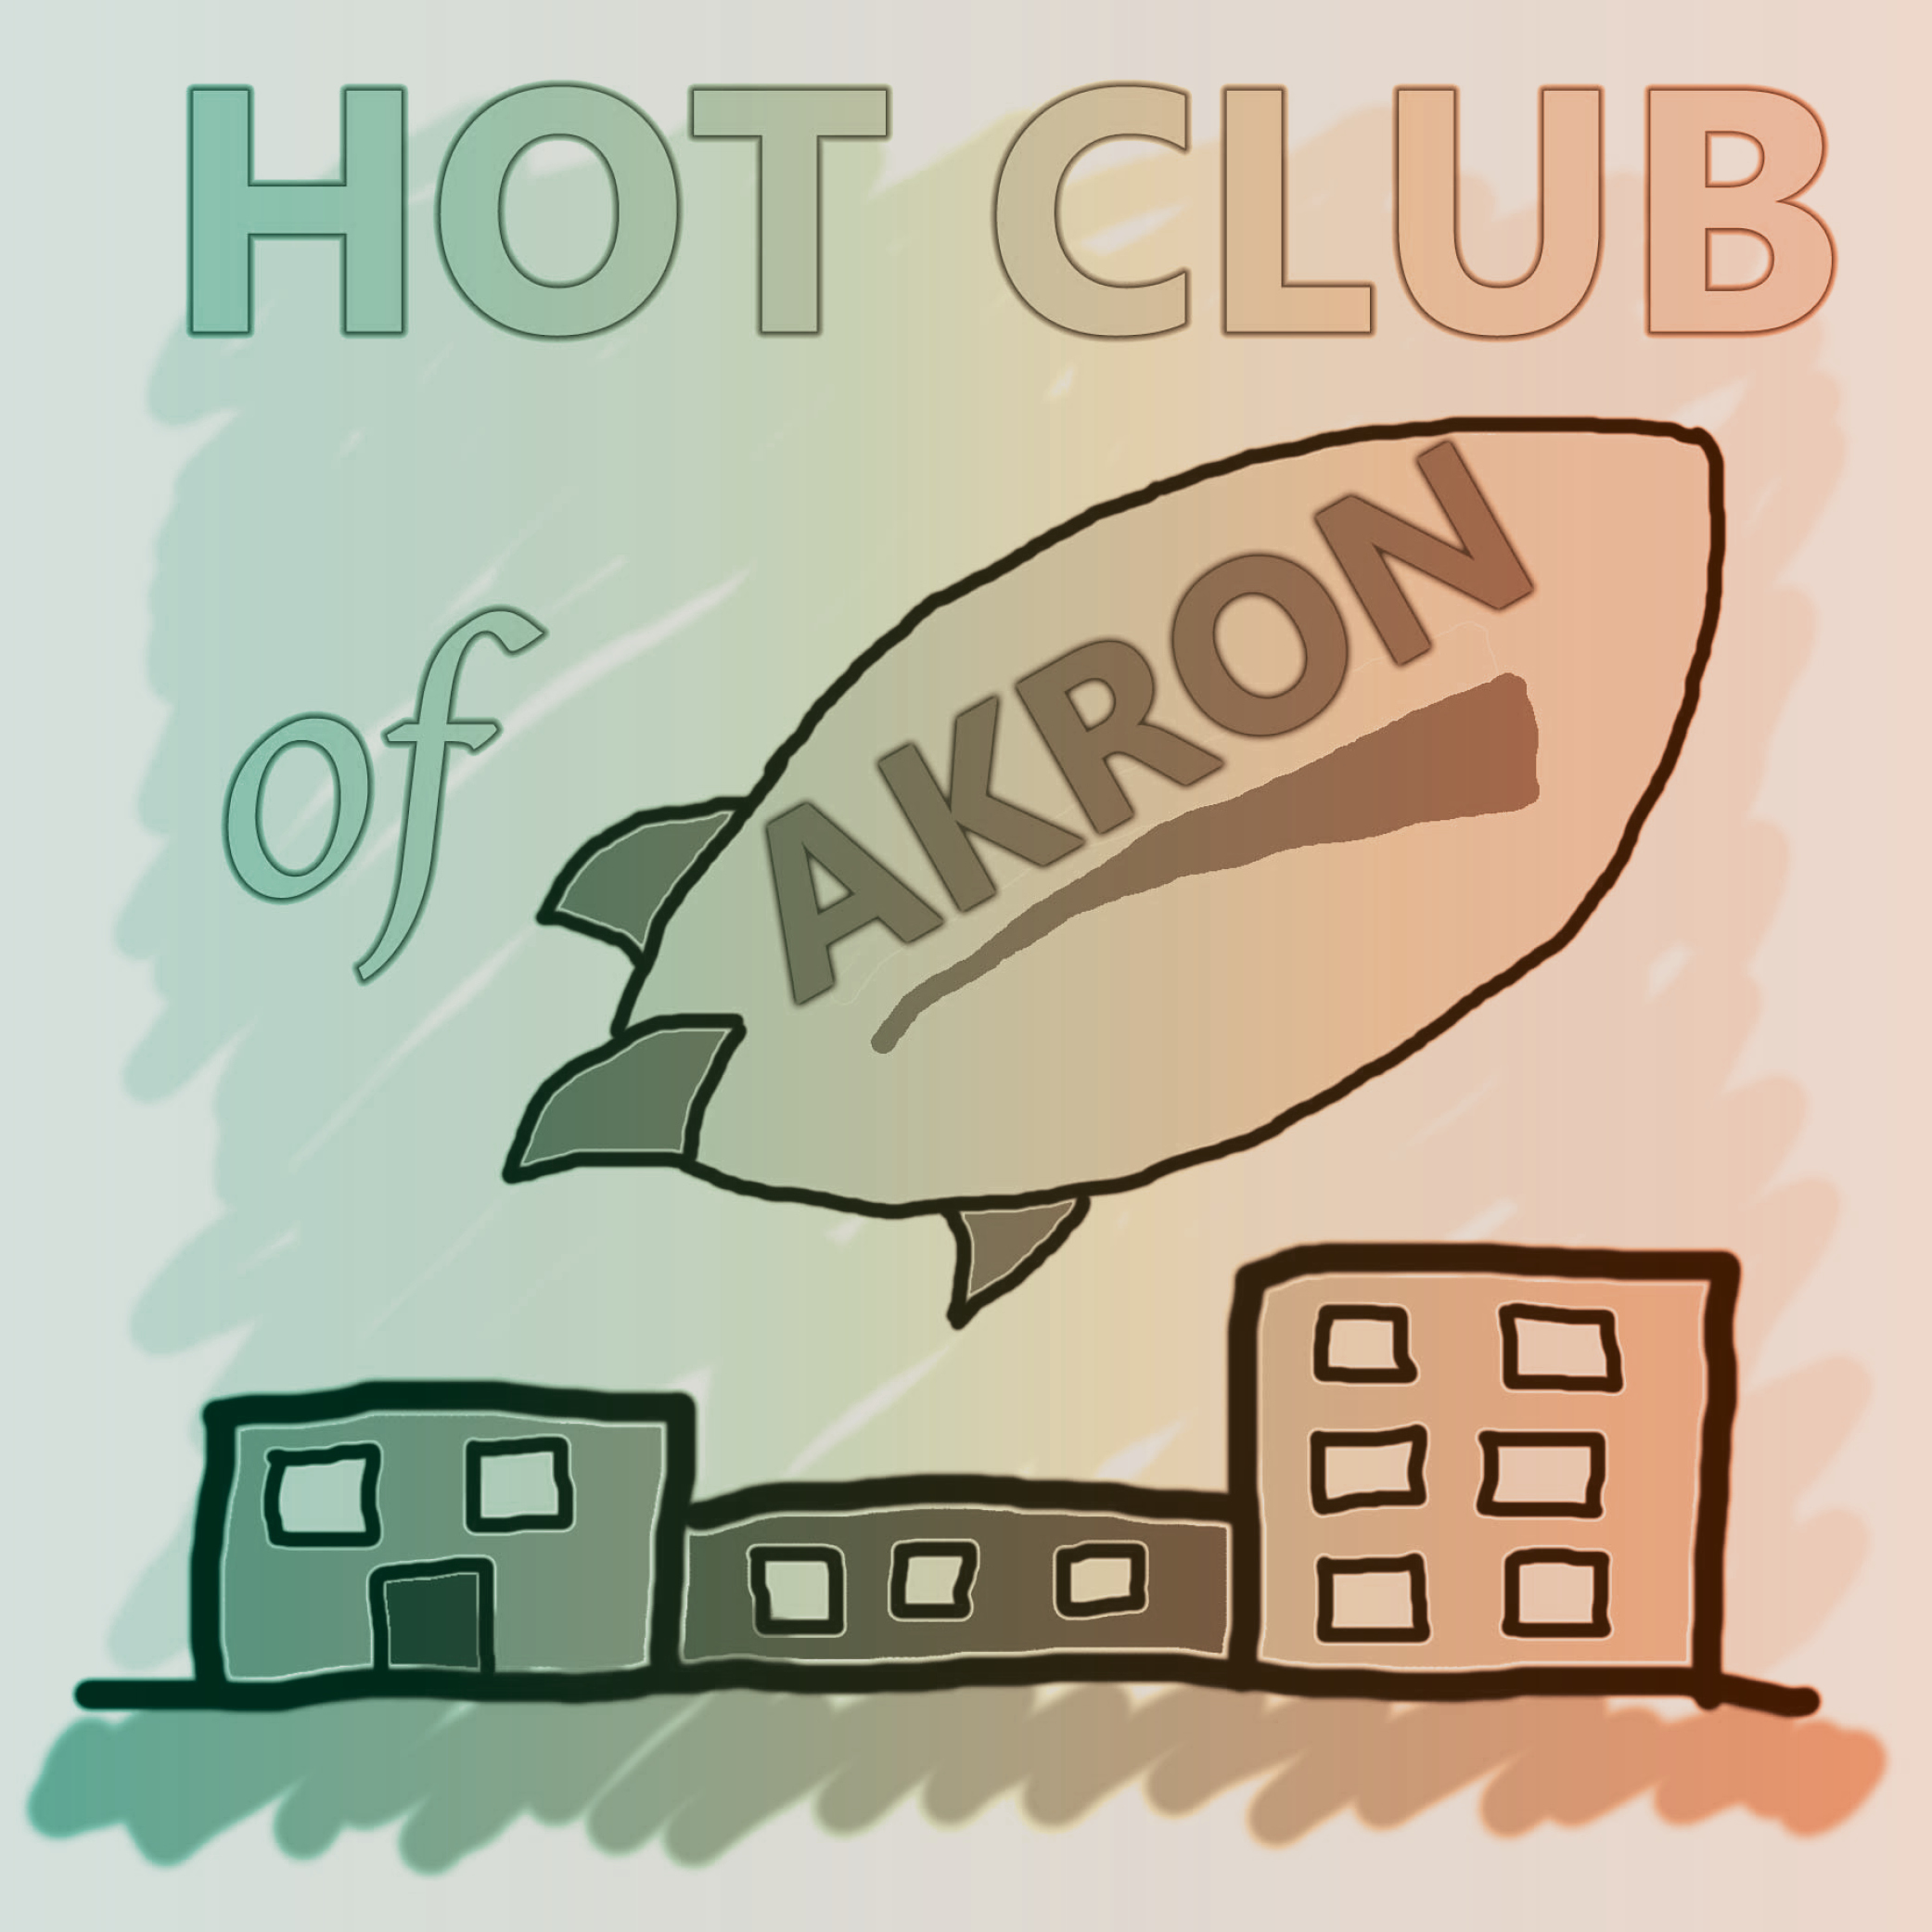 Hot Club of Akron  |  Friday, September 13  |  6:30-7:30 p.m. |  Green Tara Yoga & Healing Arts